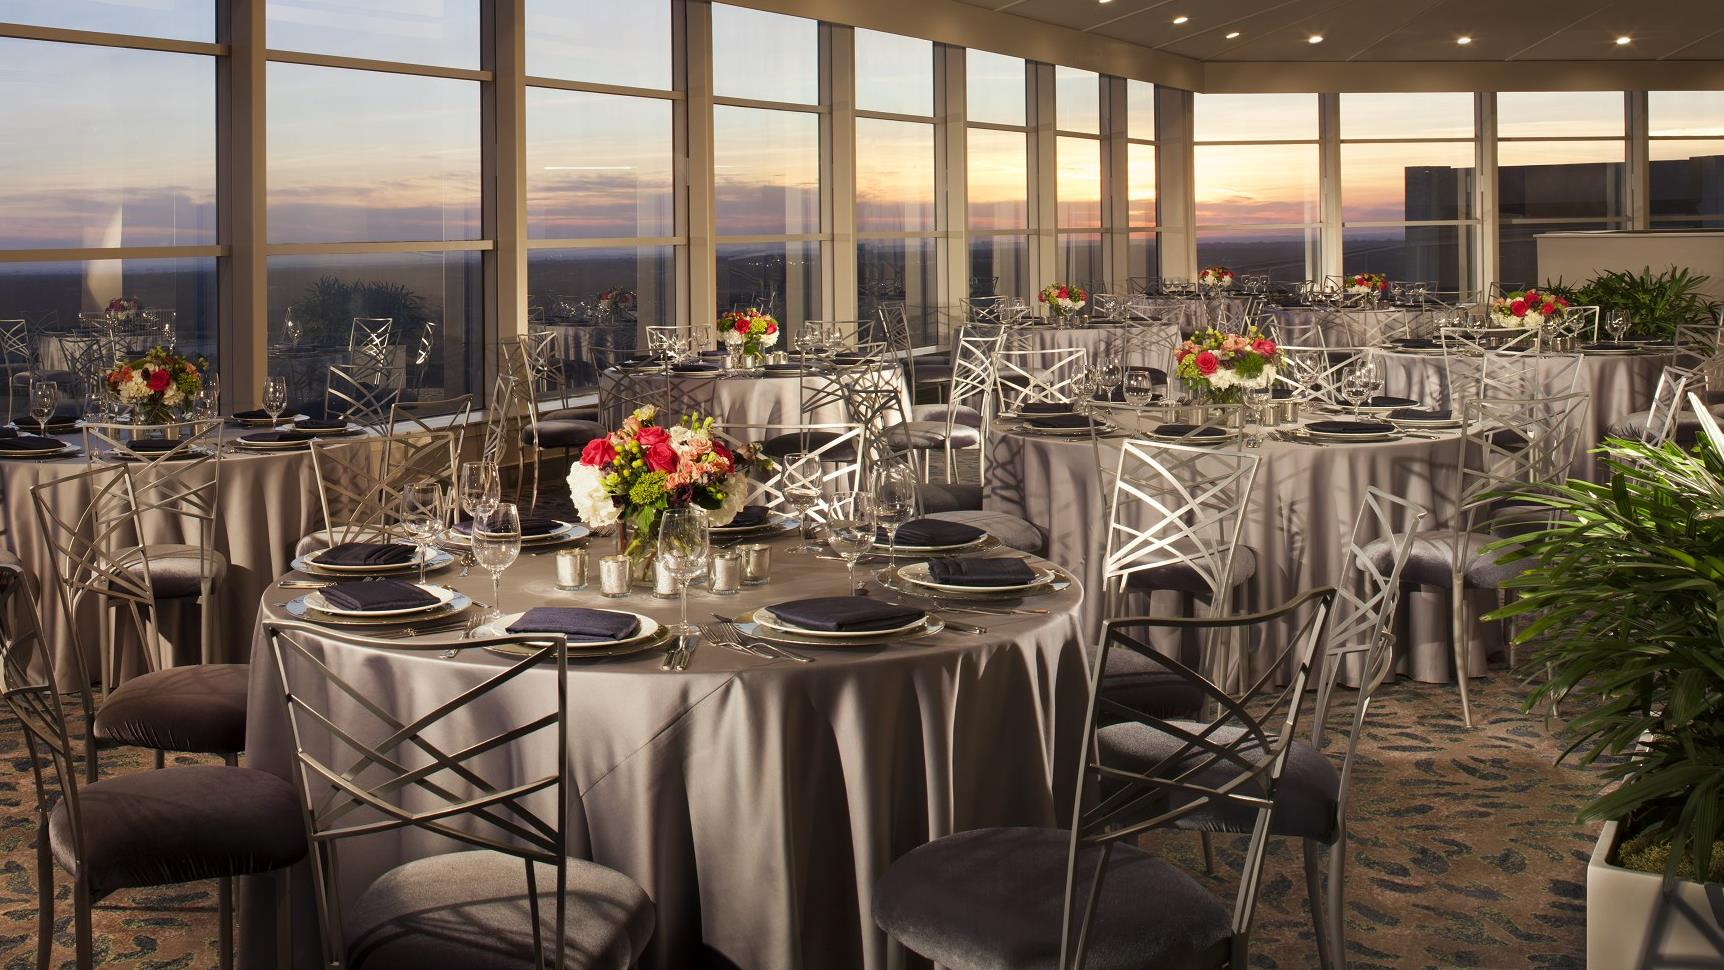 Meetings and events at The Westin Dallas Park Central